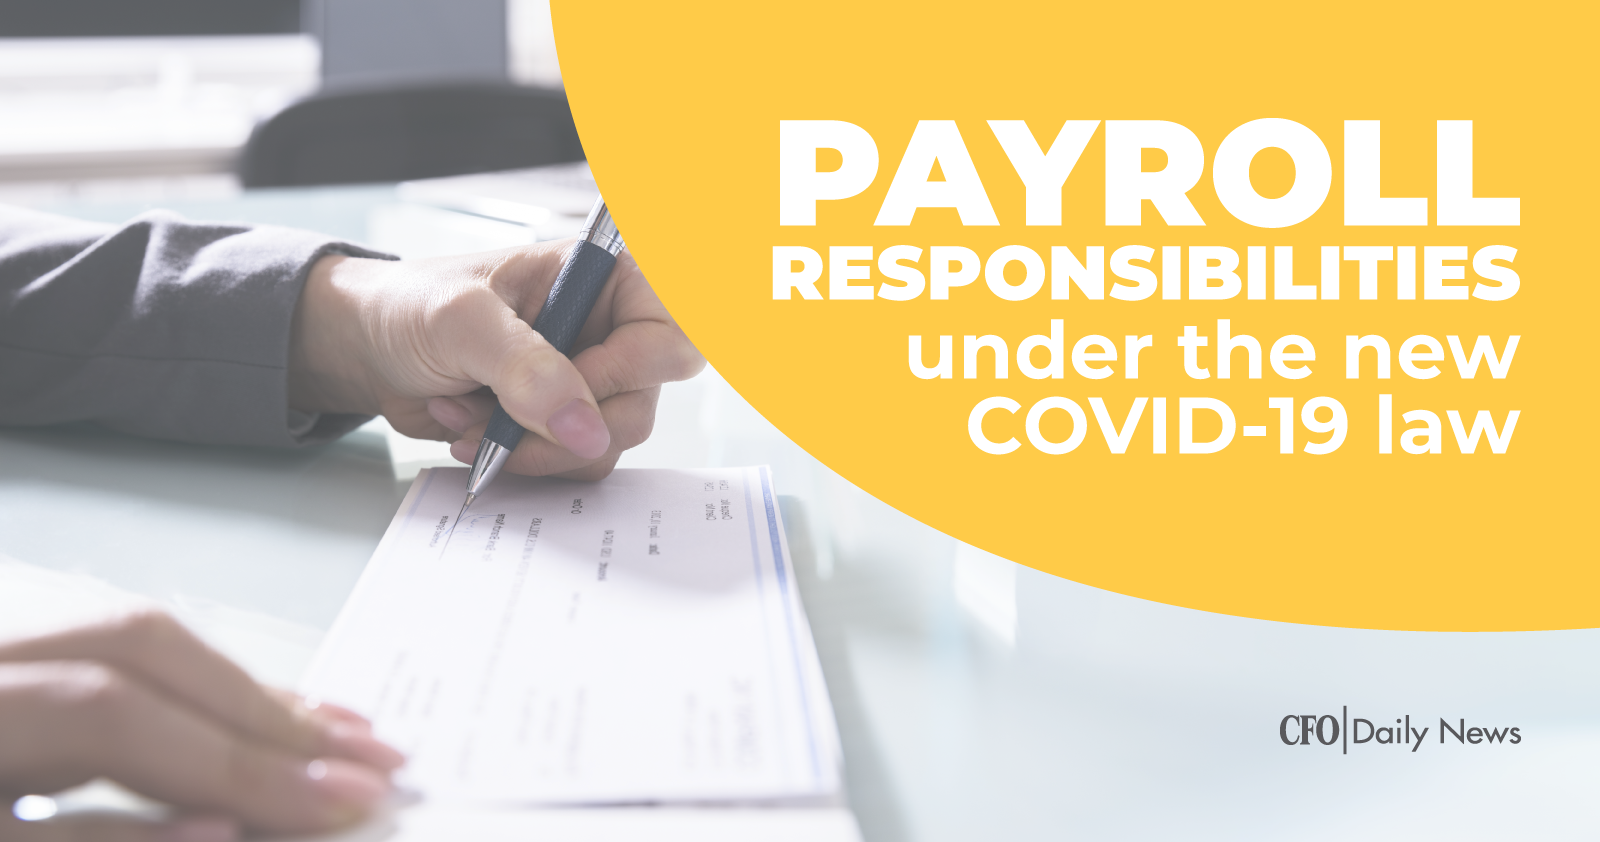 Payroll responsibilities under the new COVID-19 law